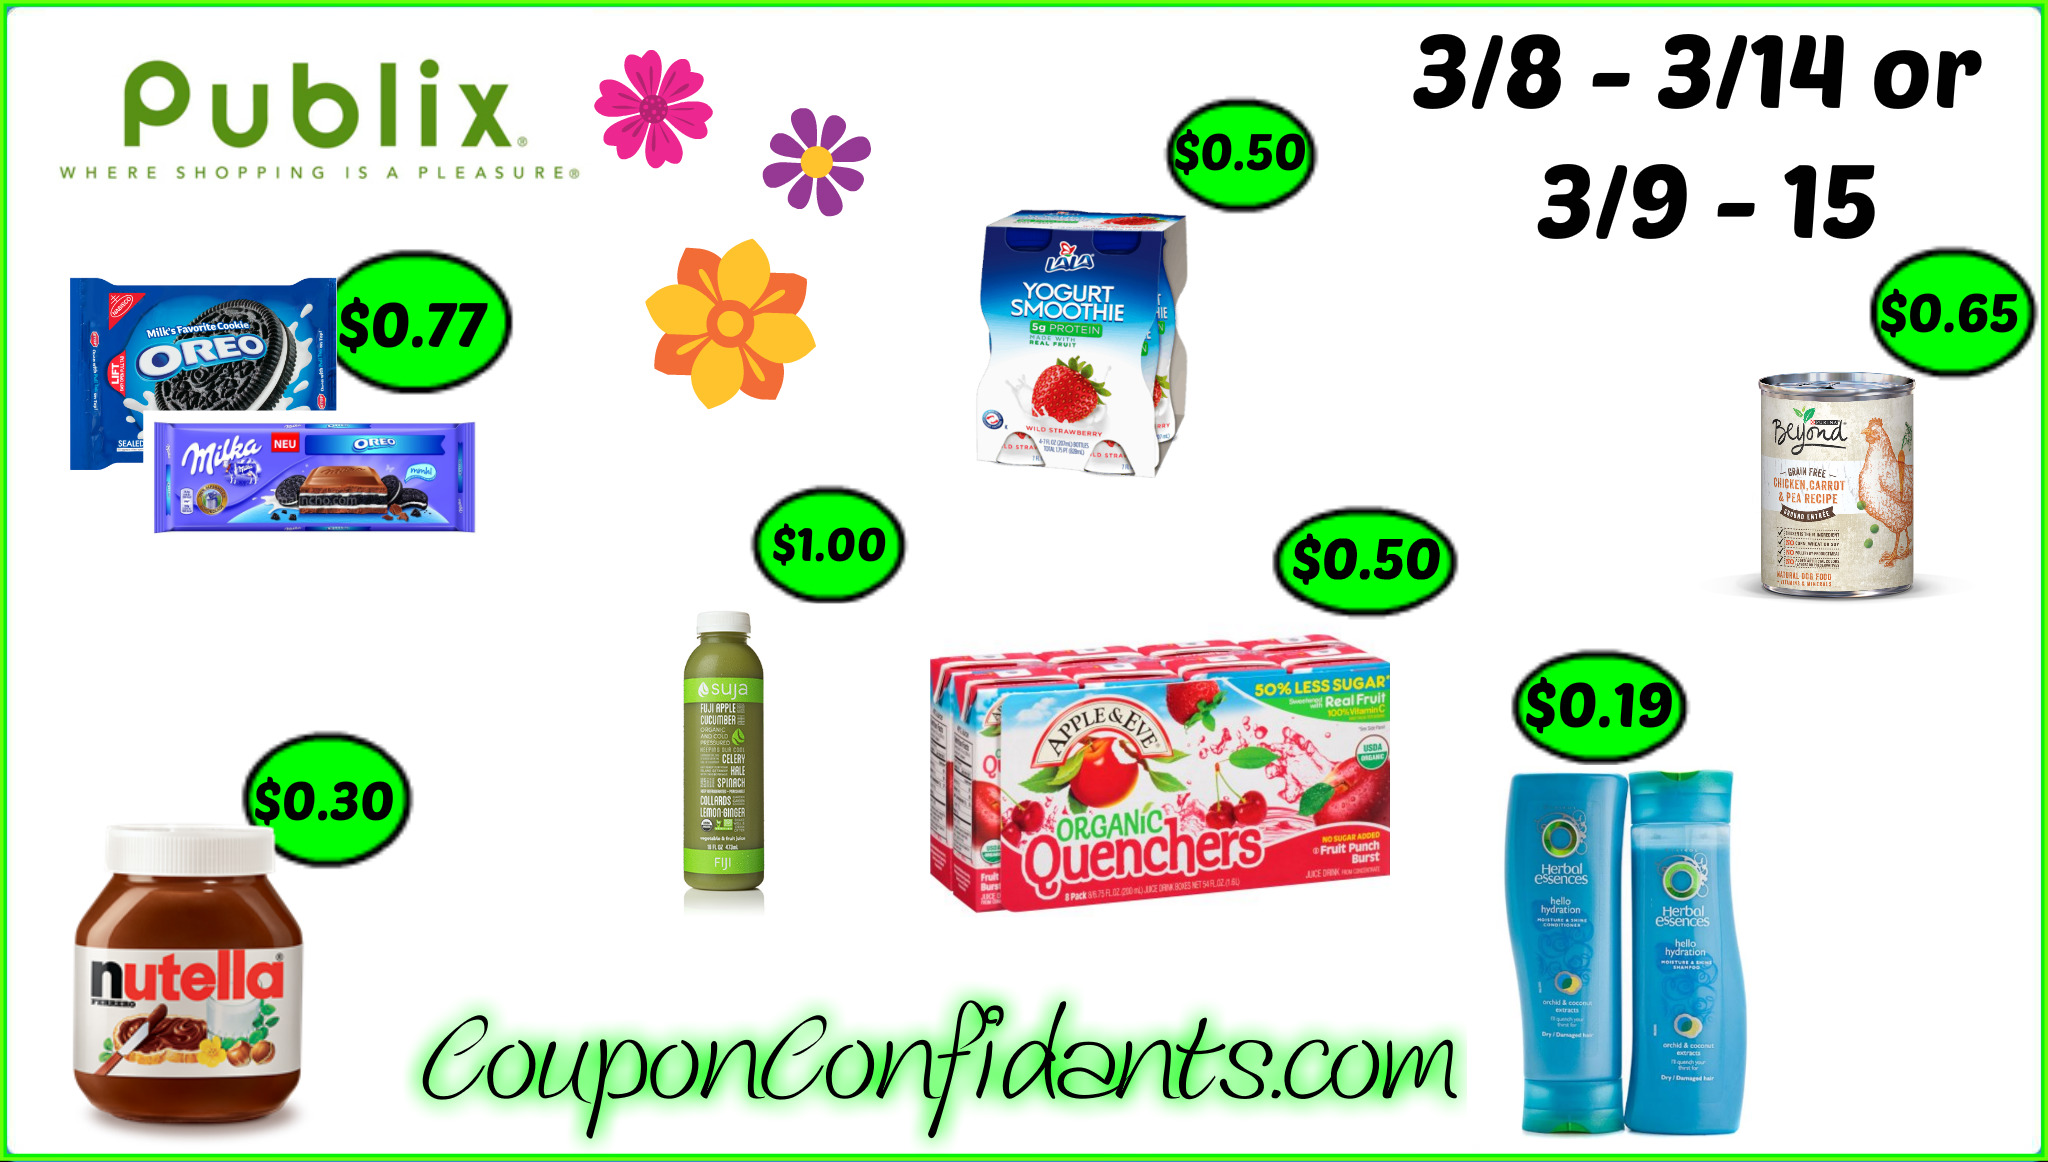 Publix BEST Deals! 3/8 - 3/14 OR 3/9 - 3/15